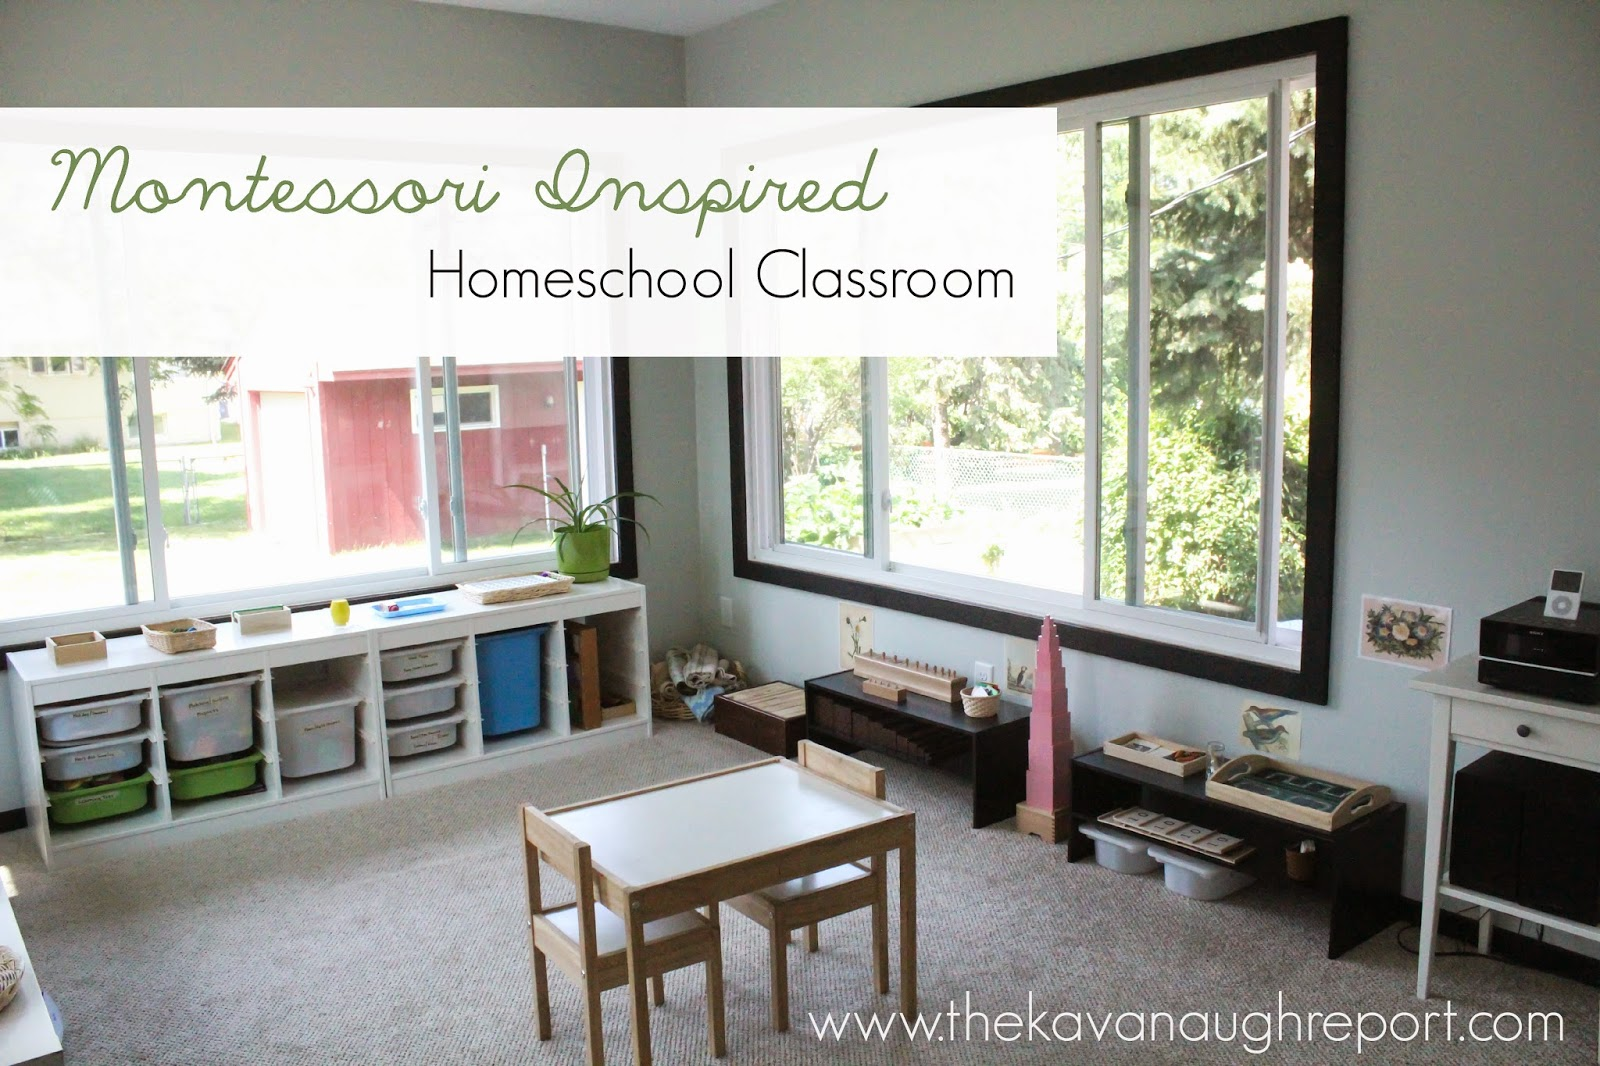 Montessori Homeschool Classroom